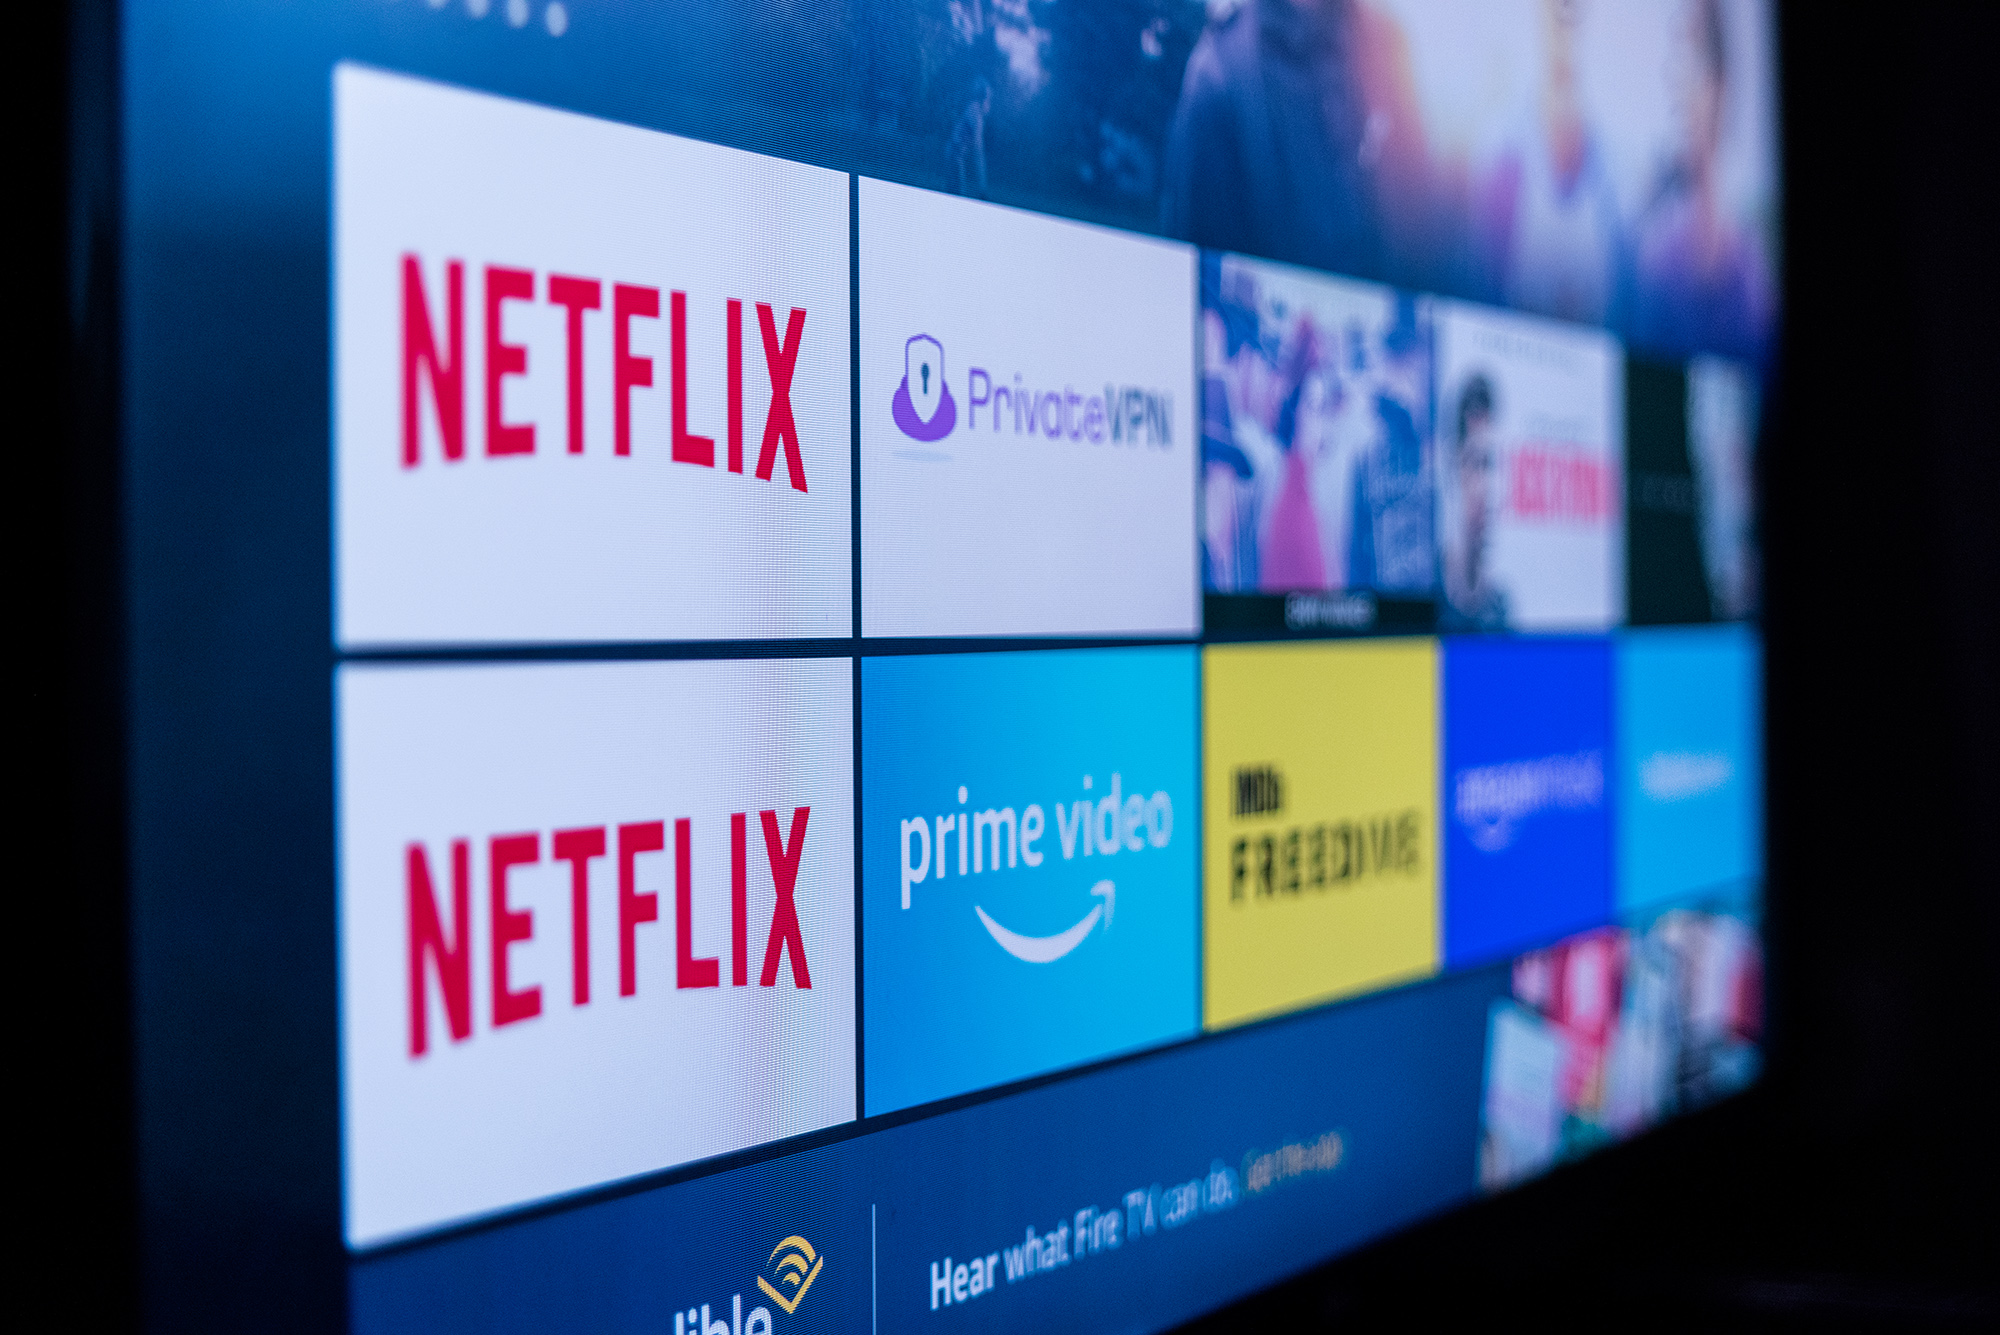 How to Watch Netflix Without a Smart TV